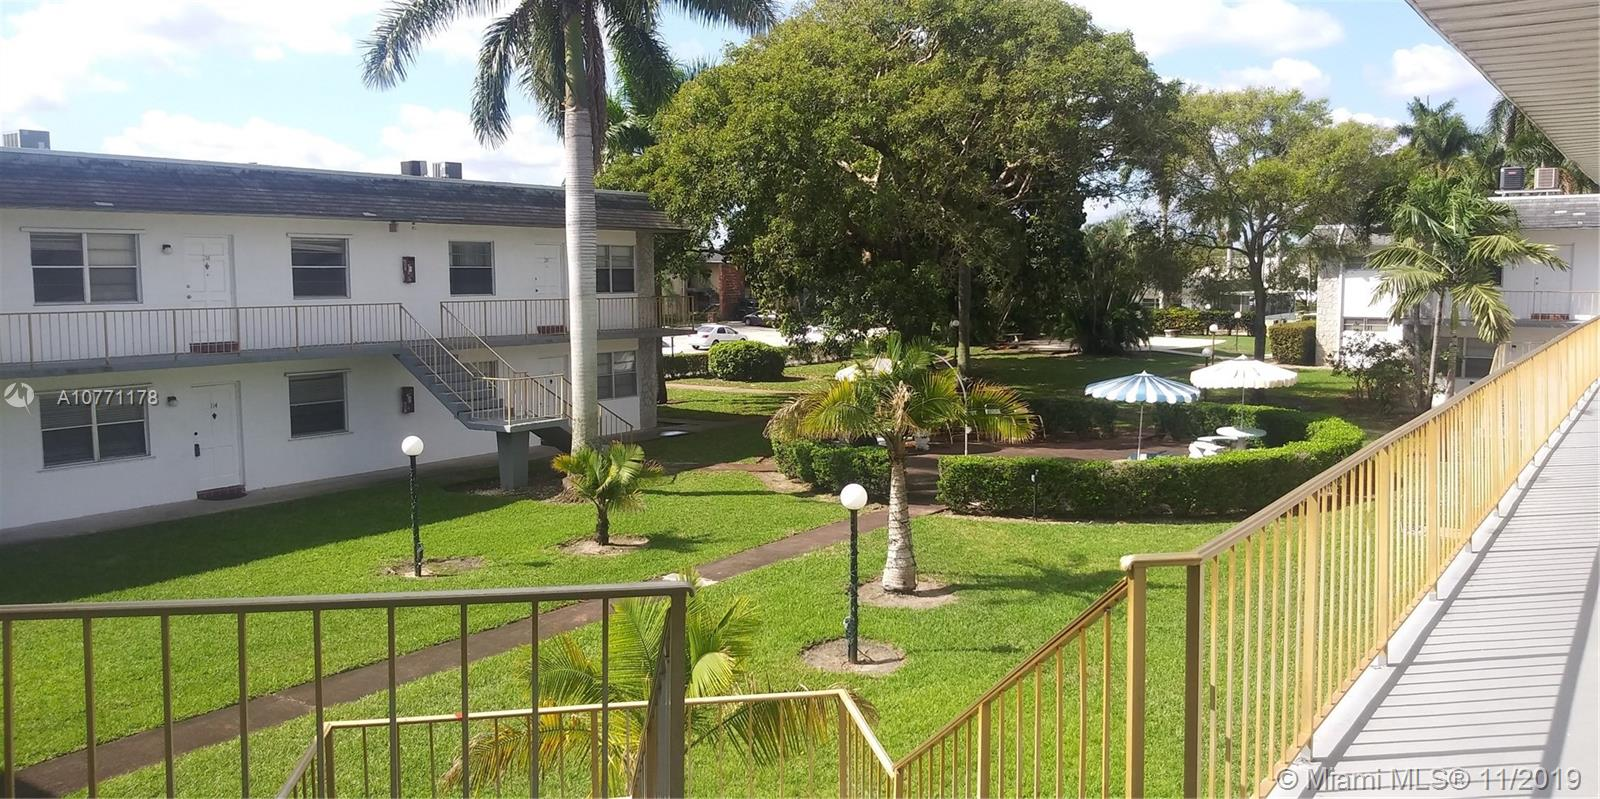 6191 SW 37th St #211 For Sale A10771178, FL